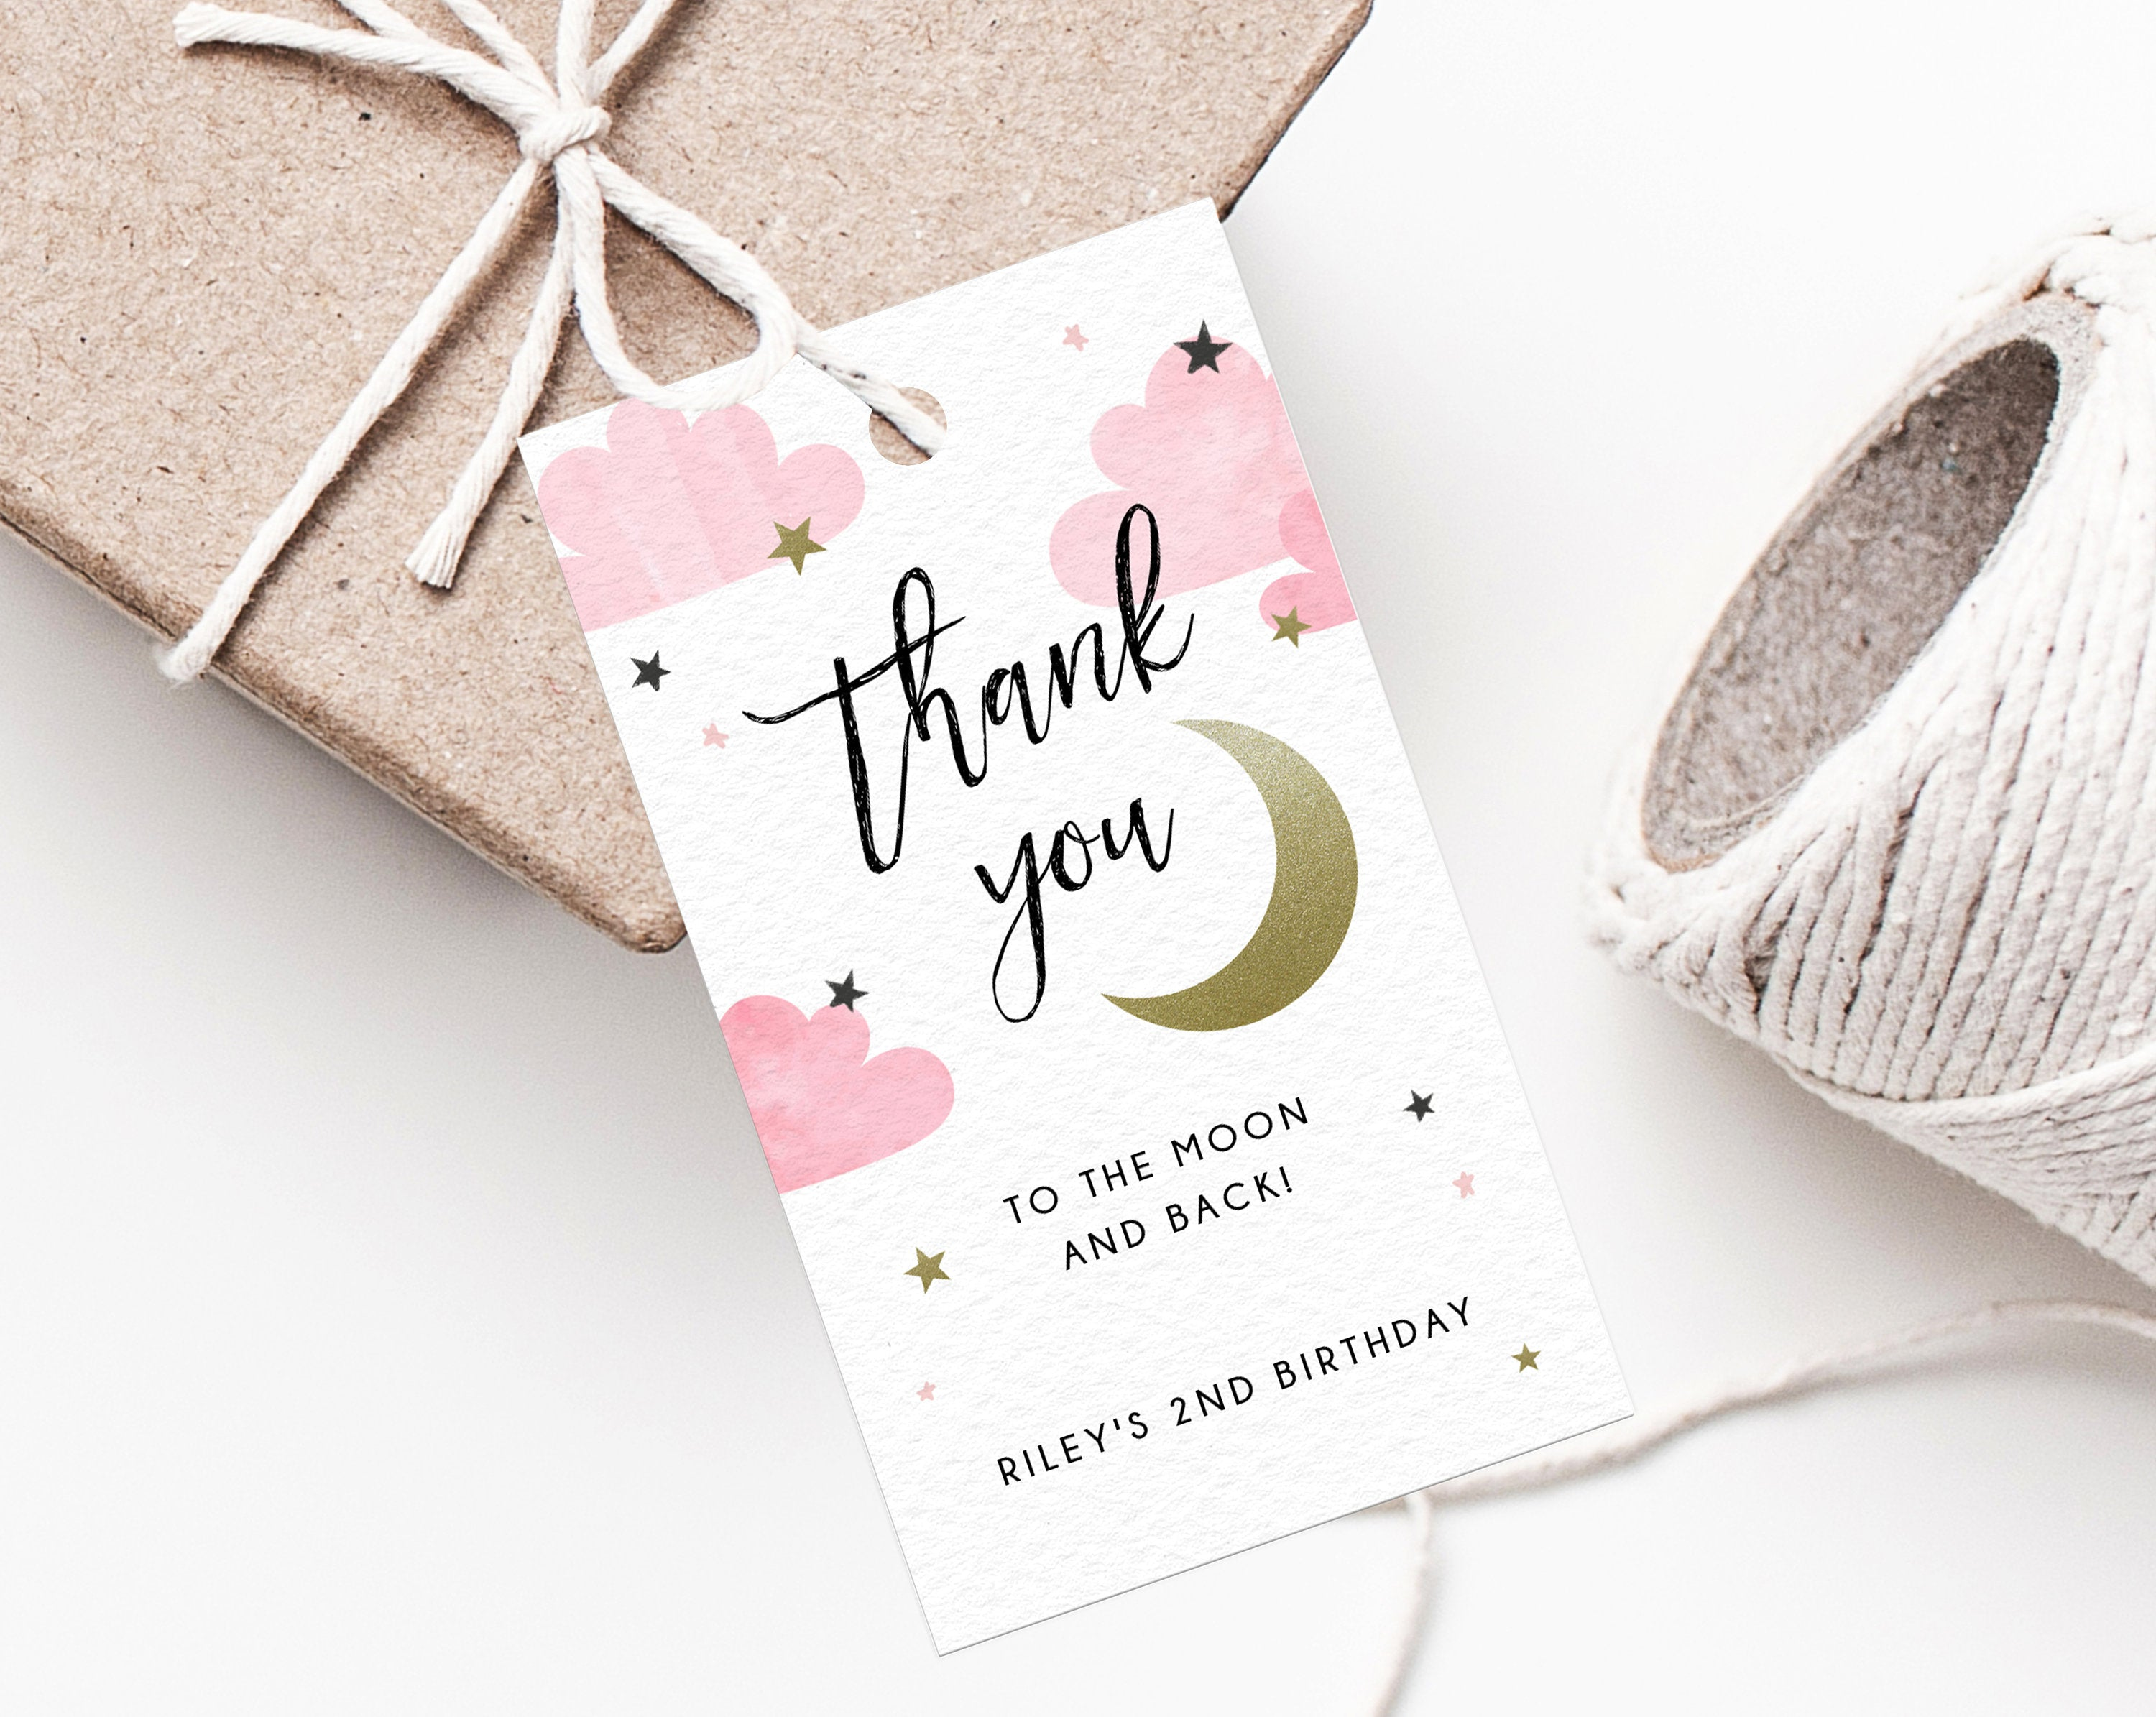 Two The Moon Favor Tag Template, Thank You To The Moon And Back Favor Tag, Gift Tag, Gold Moon Birthday Party Favor Label, Templett